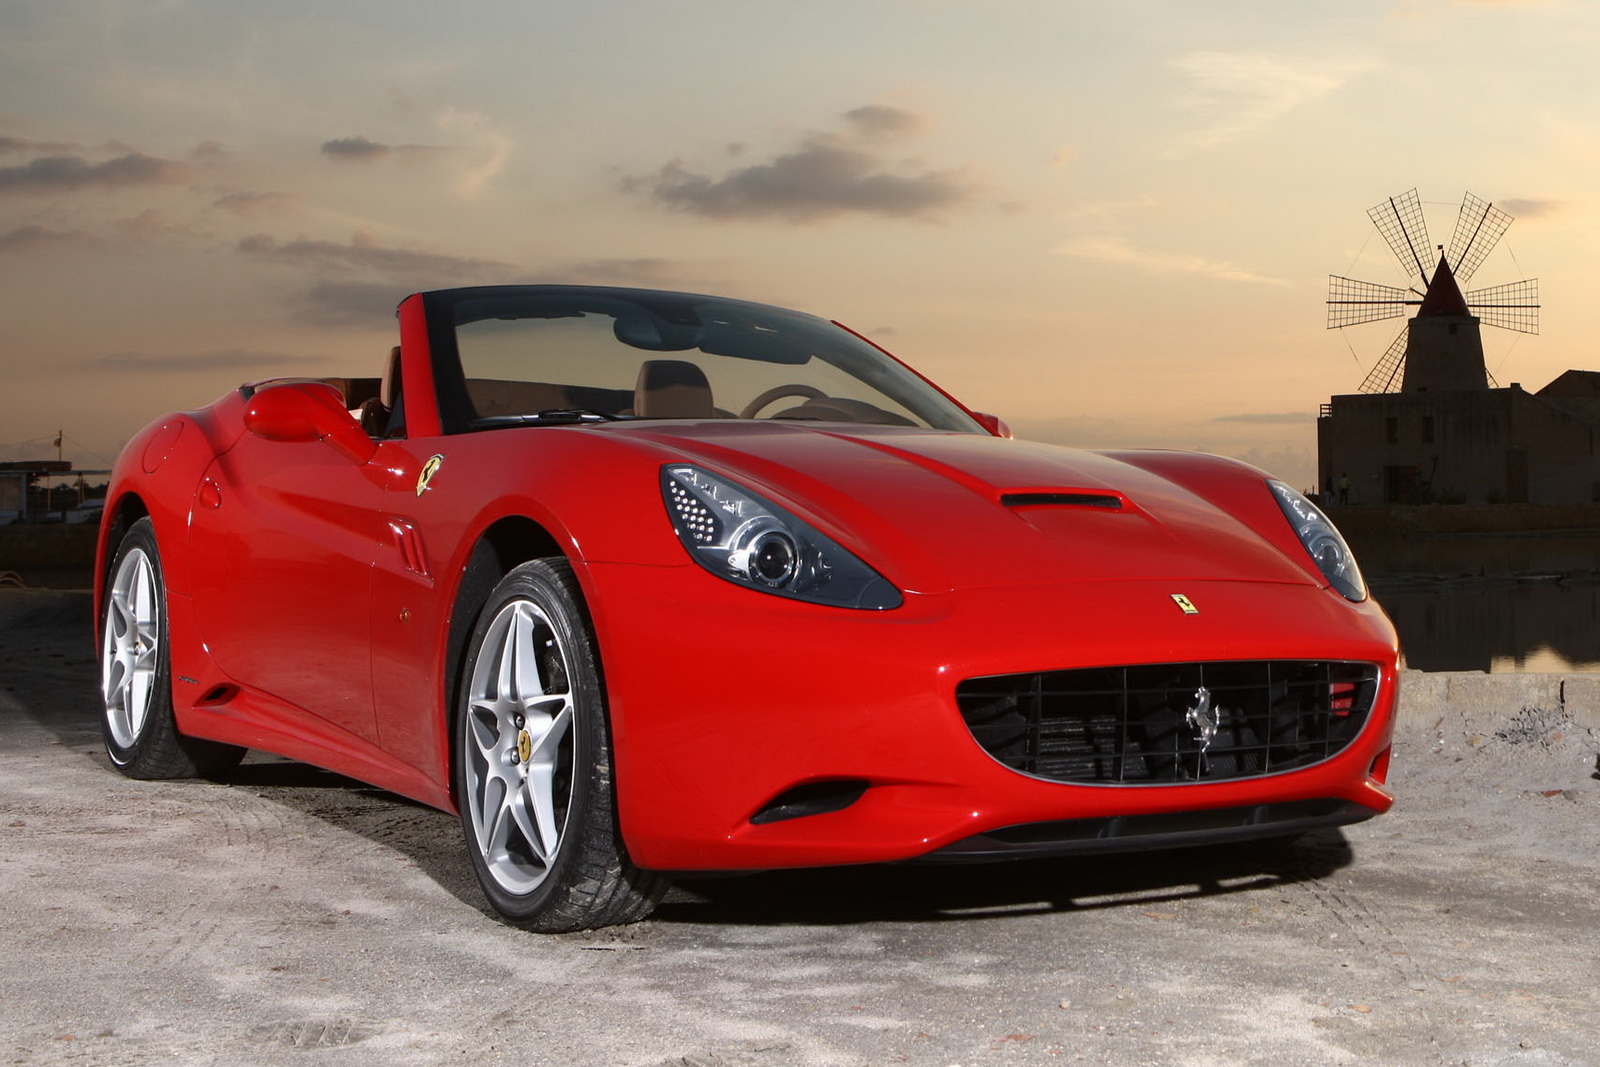 2012 Ferrari California 1 2012 FERRARI'S CALIFORNIA FACELIFT